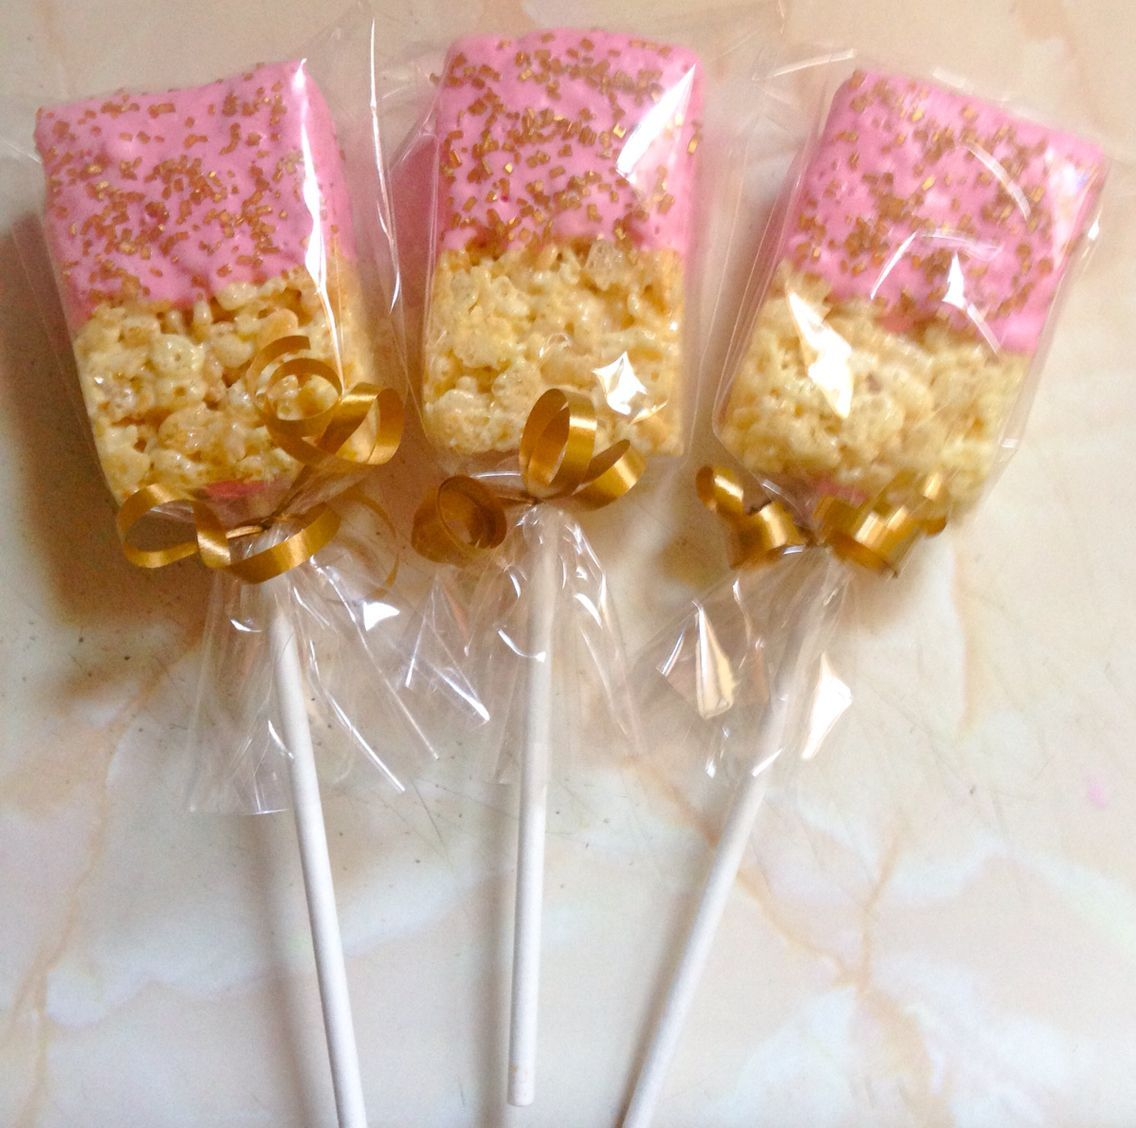 Pink with Gold sprinkles rice crispy treats Pink with Gold sprinkles rice crispy treats